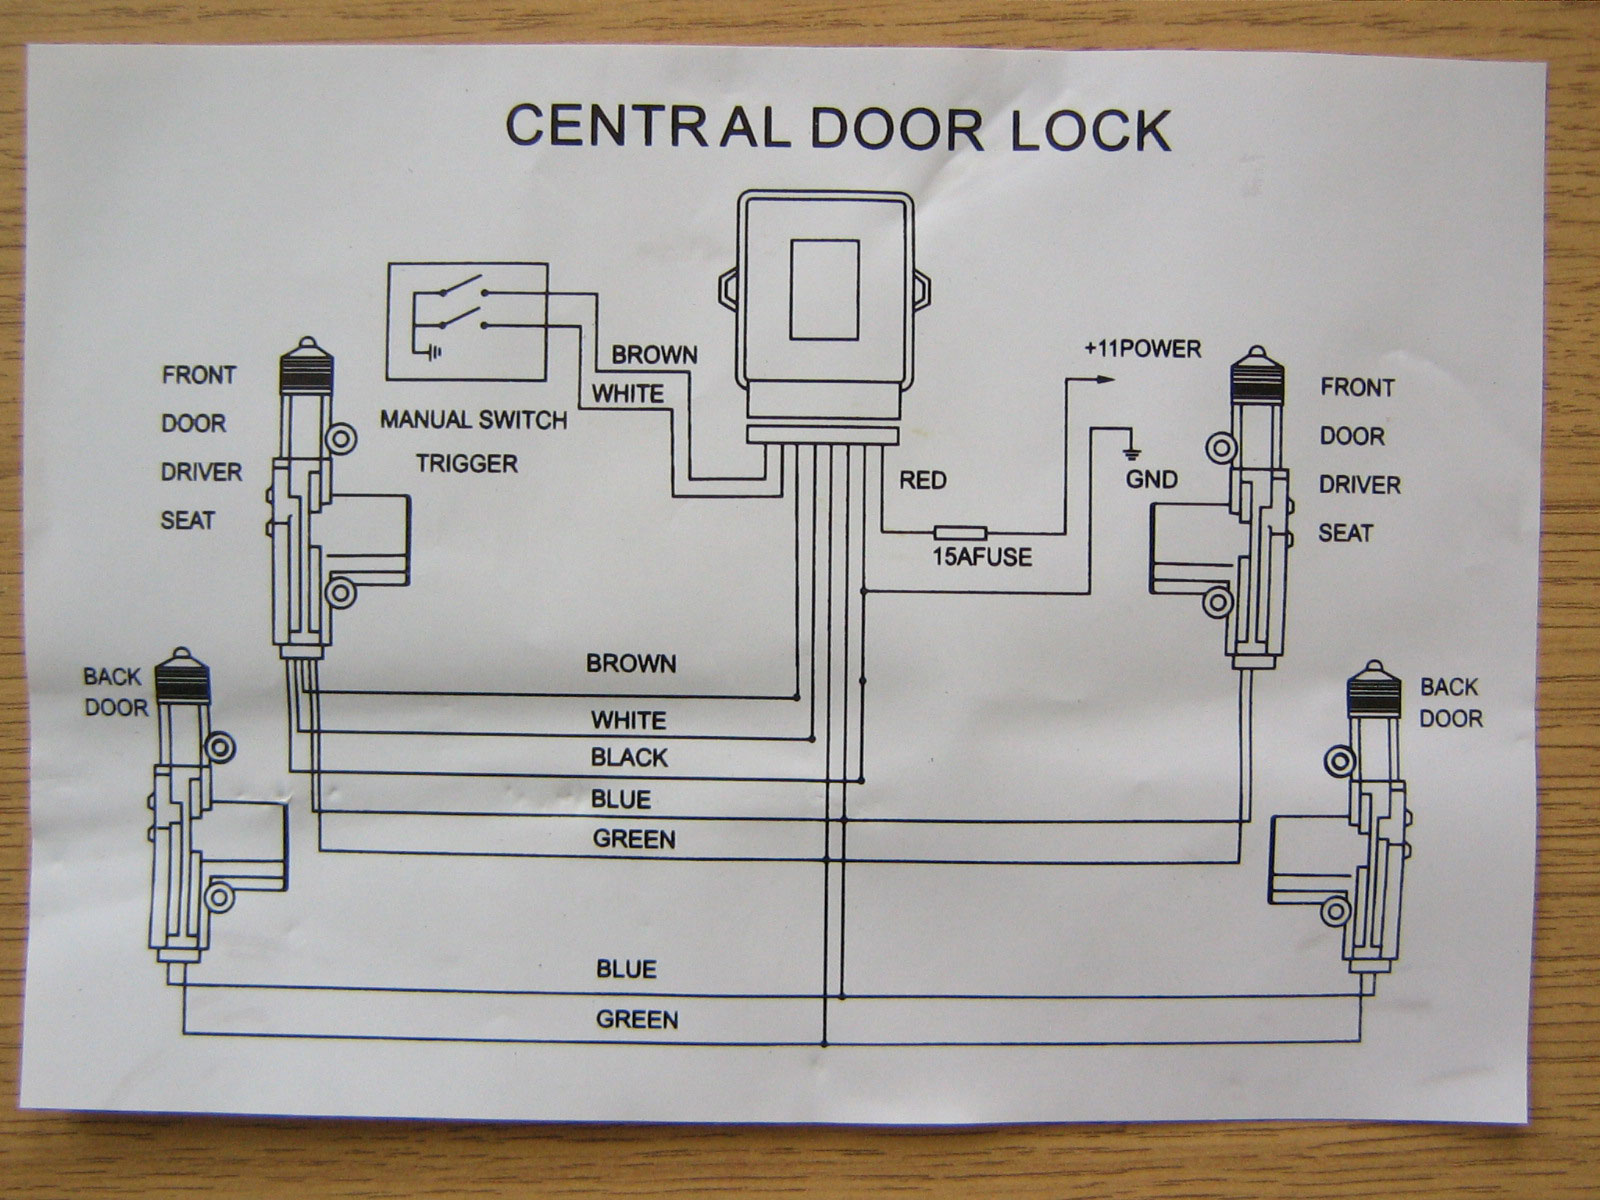 MH_4958] Central Locking Actuator Wiring Diagram Download Diagram